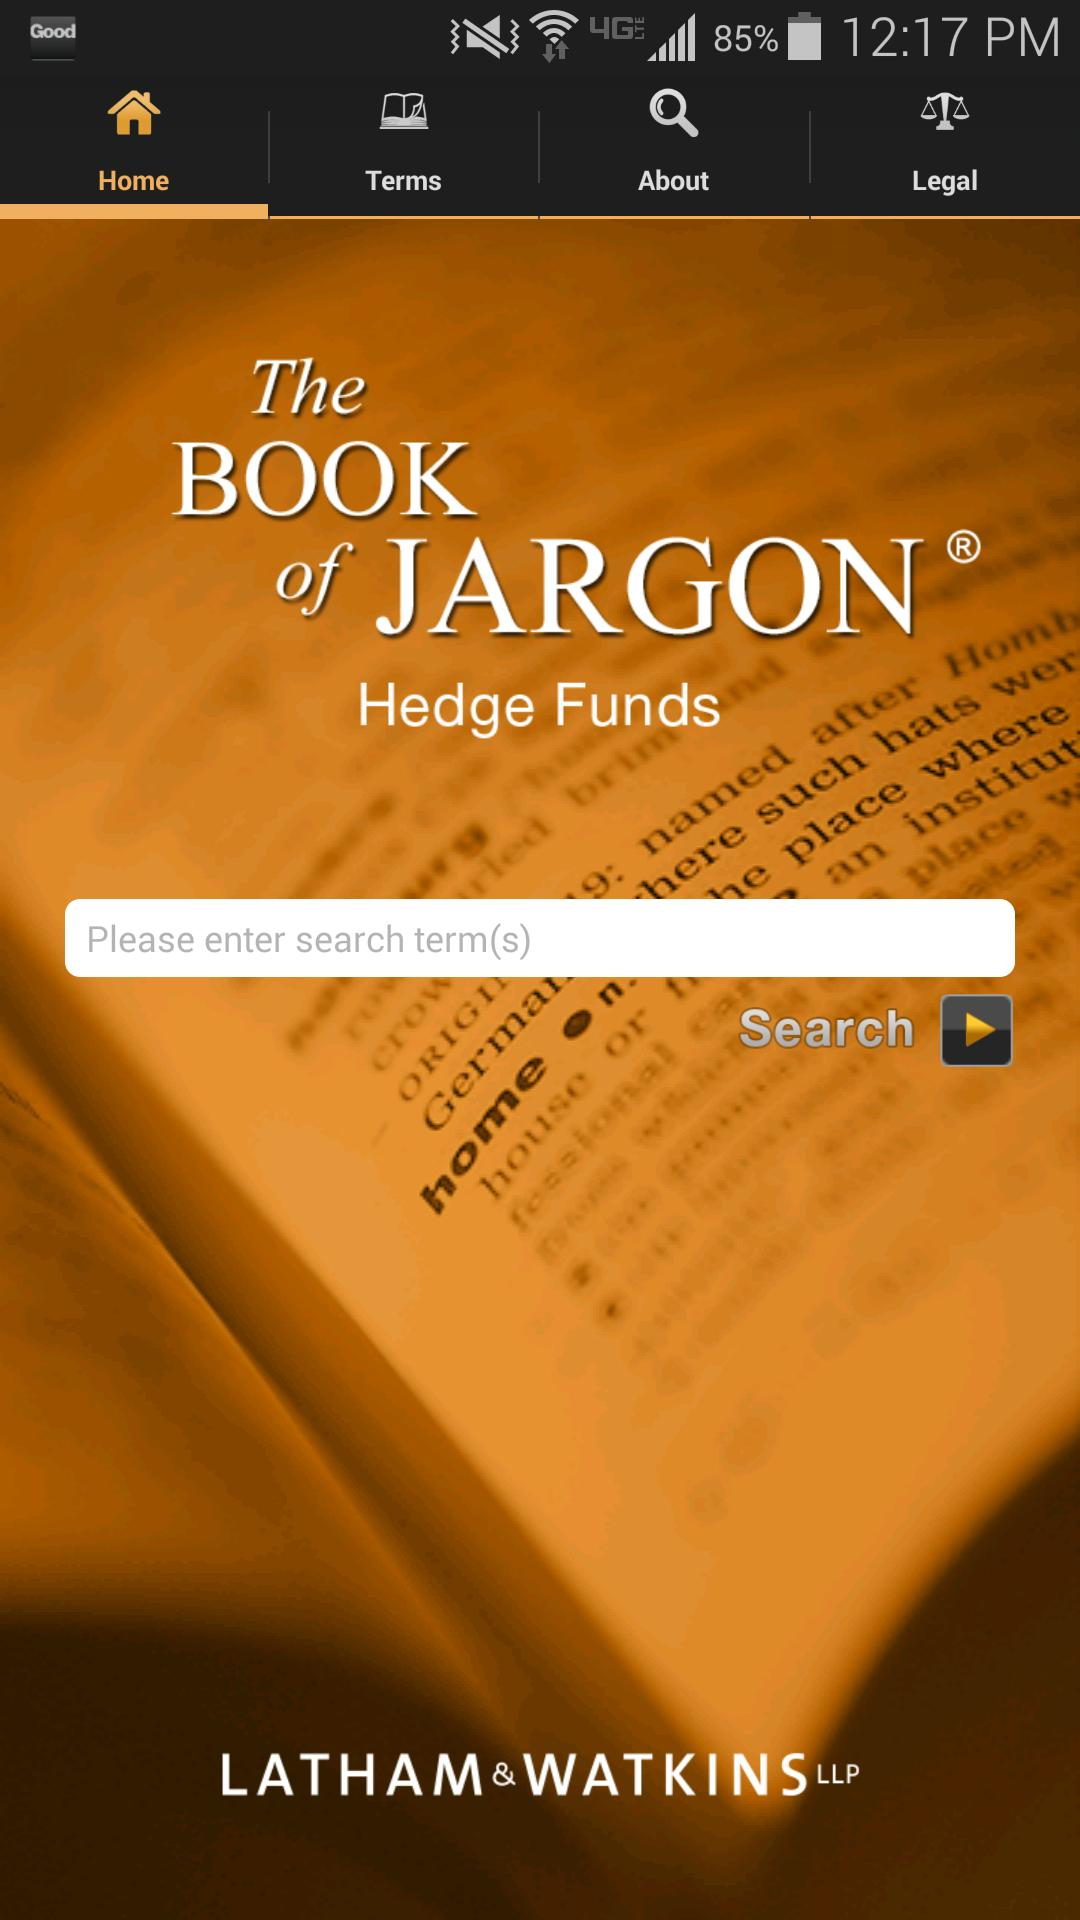 The Book of Jargon® - HF poster